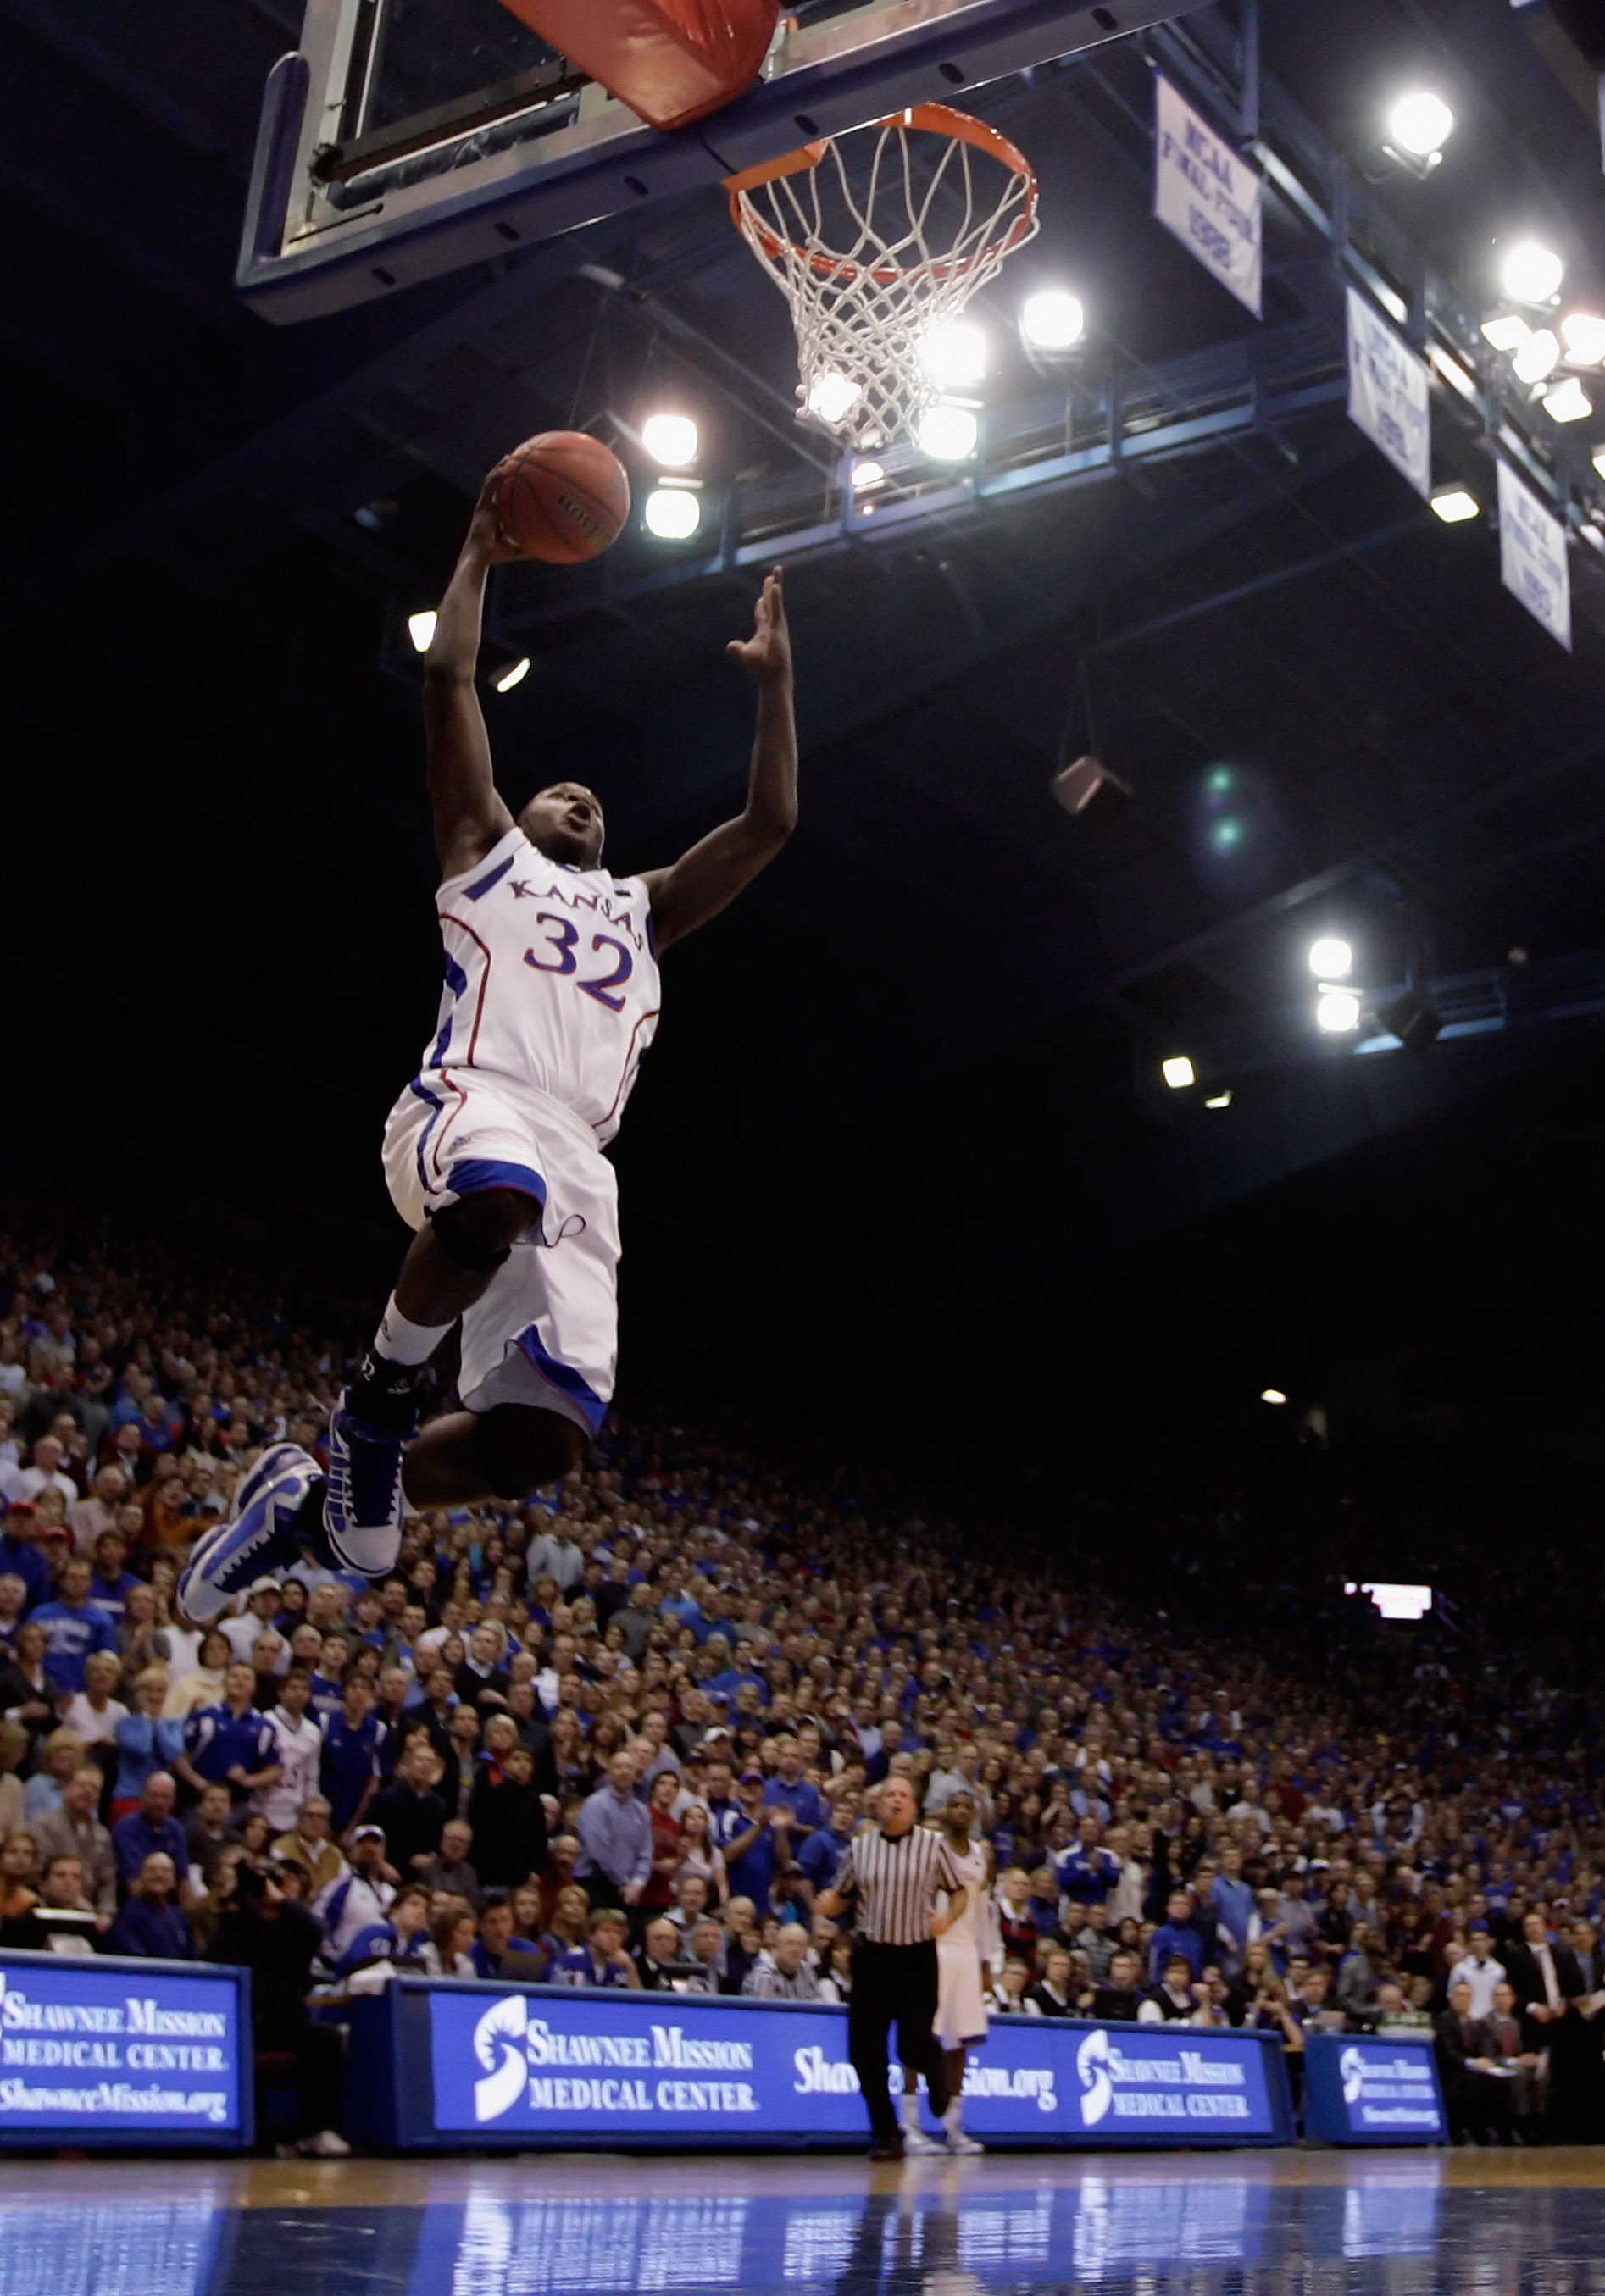 LAWRENCE, KS - JANUARY 22:  Josh Selby #32 of the Kansas Jayhawks dunks during the game against the Texas Longhorns on January 22, 2011 at Allen Fieldhouse in Lawrence, Kansas.  (Photo by Jamie Squire/Getty Images)